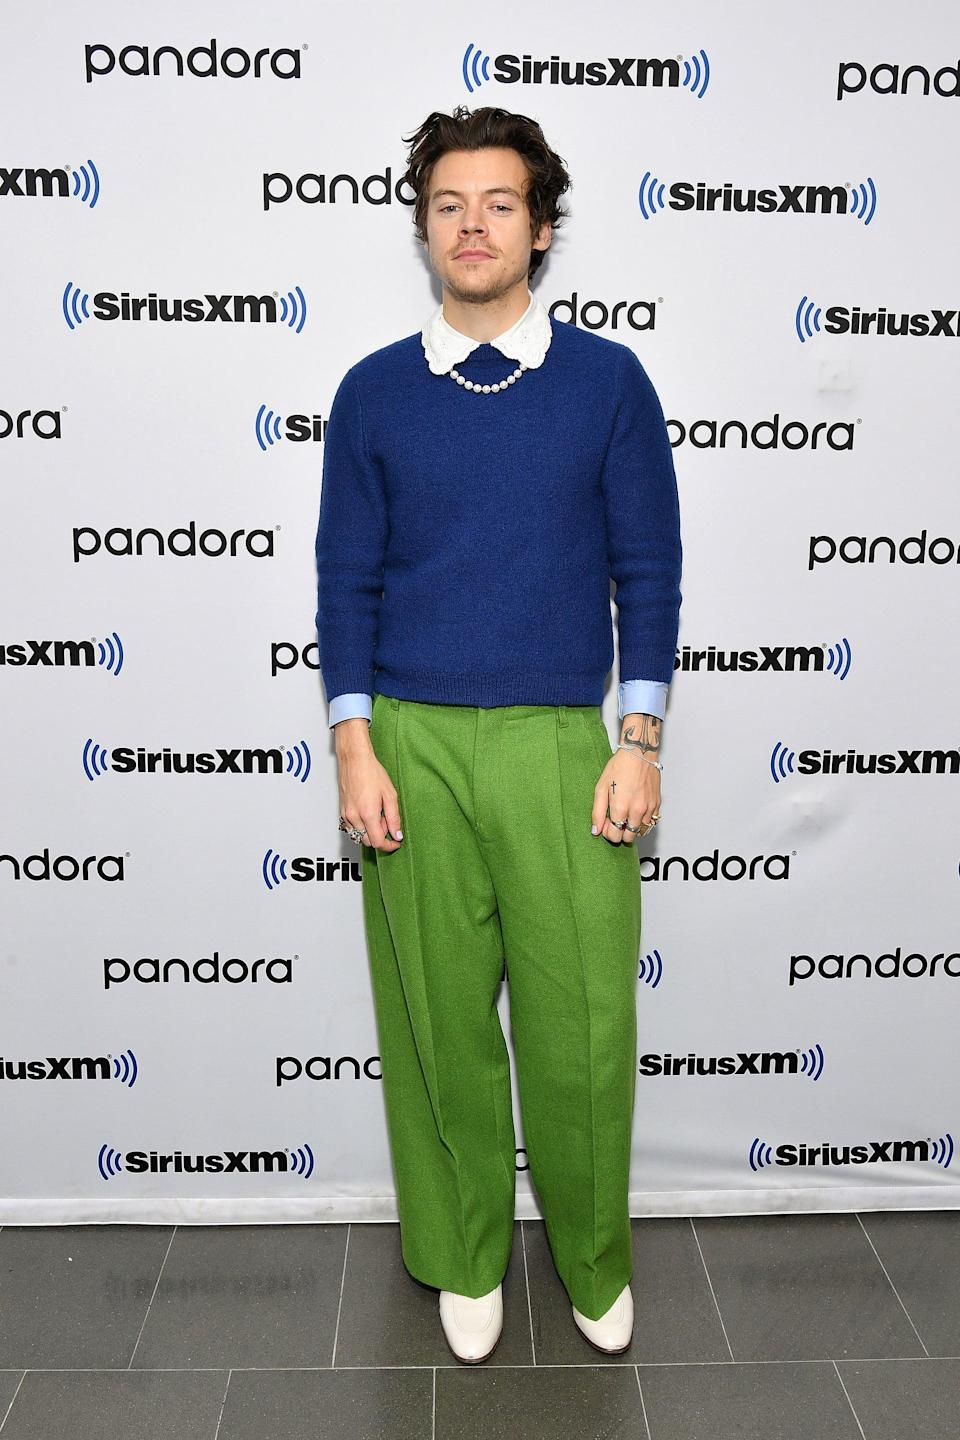 <p>Wearing a blue sweater, green trousers, a pearl necklace, and white boots to an event in 2020.</p>